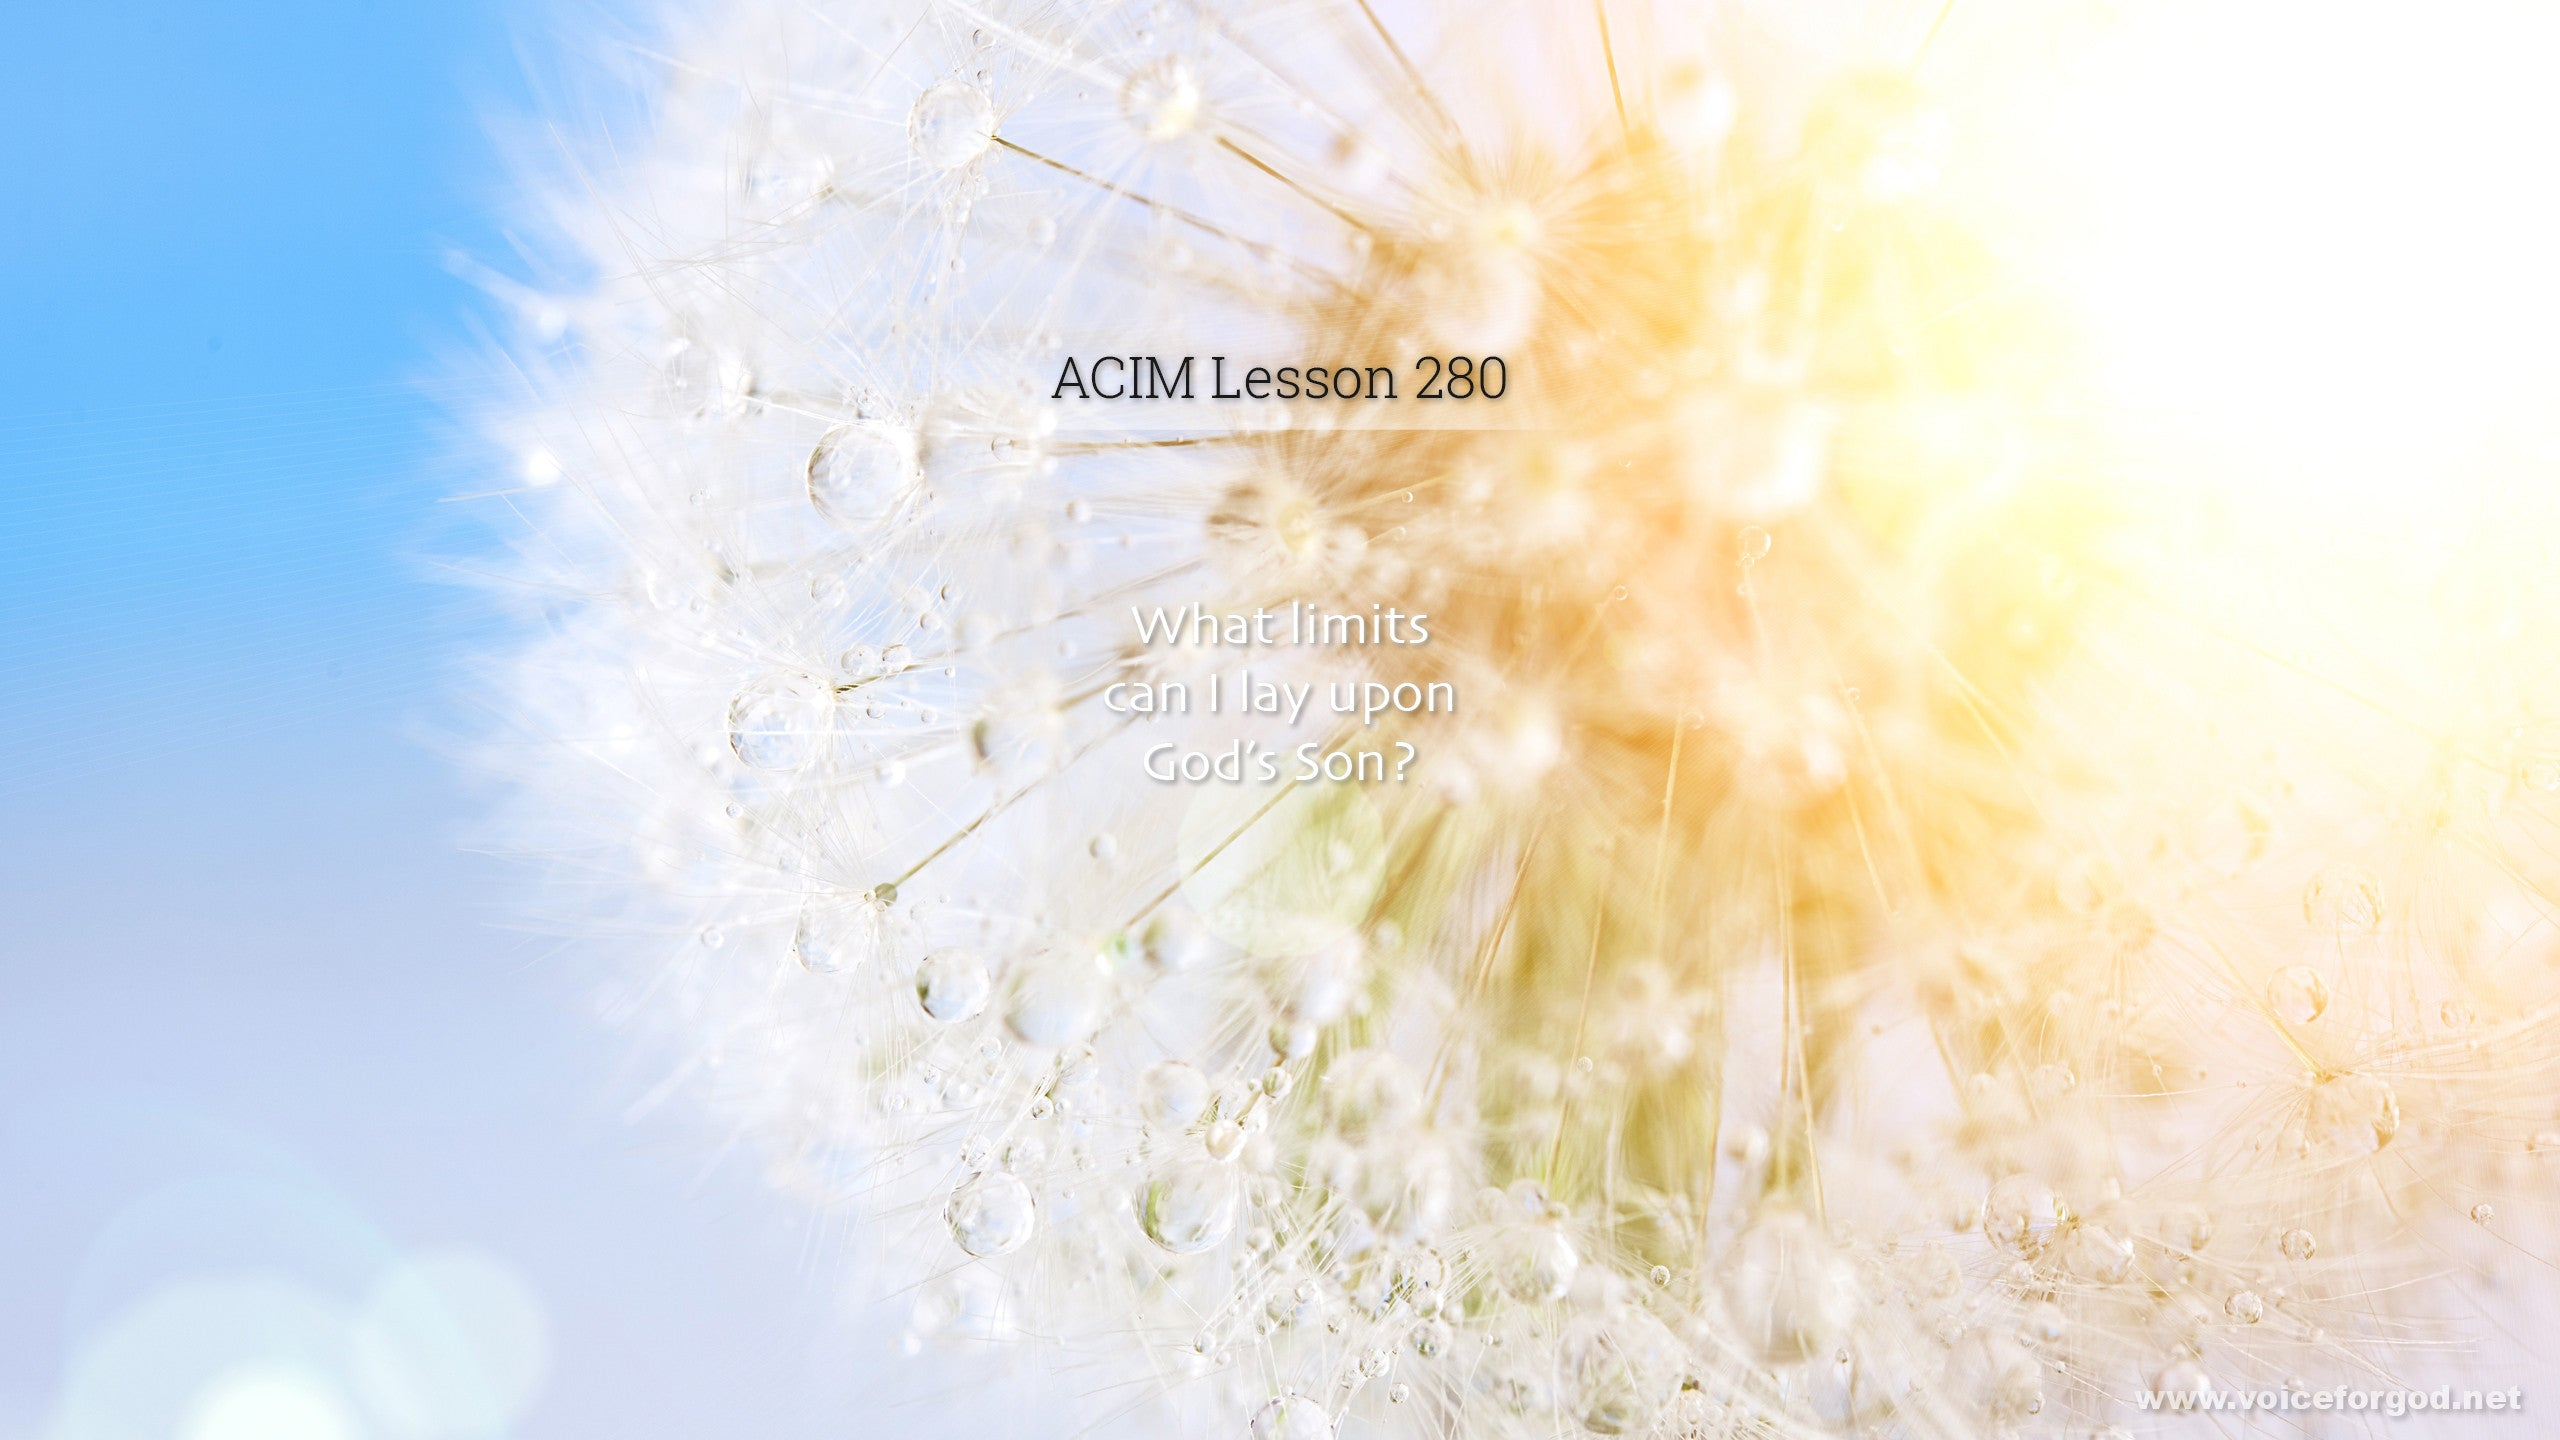 ACIM Lesson 280 - A Course in Miracles Workbook Lesson 280